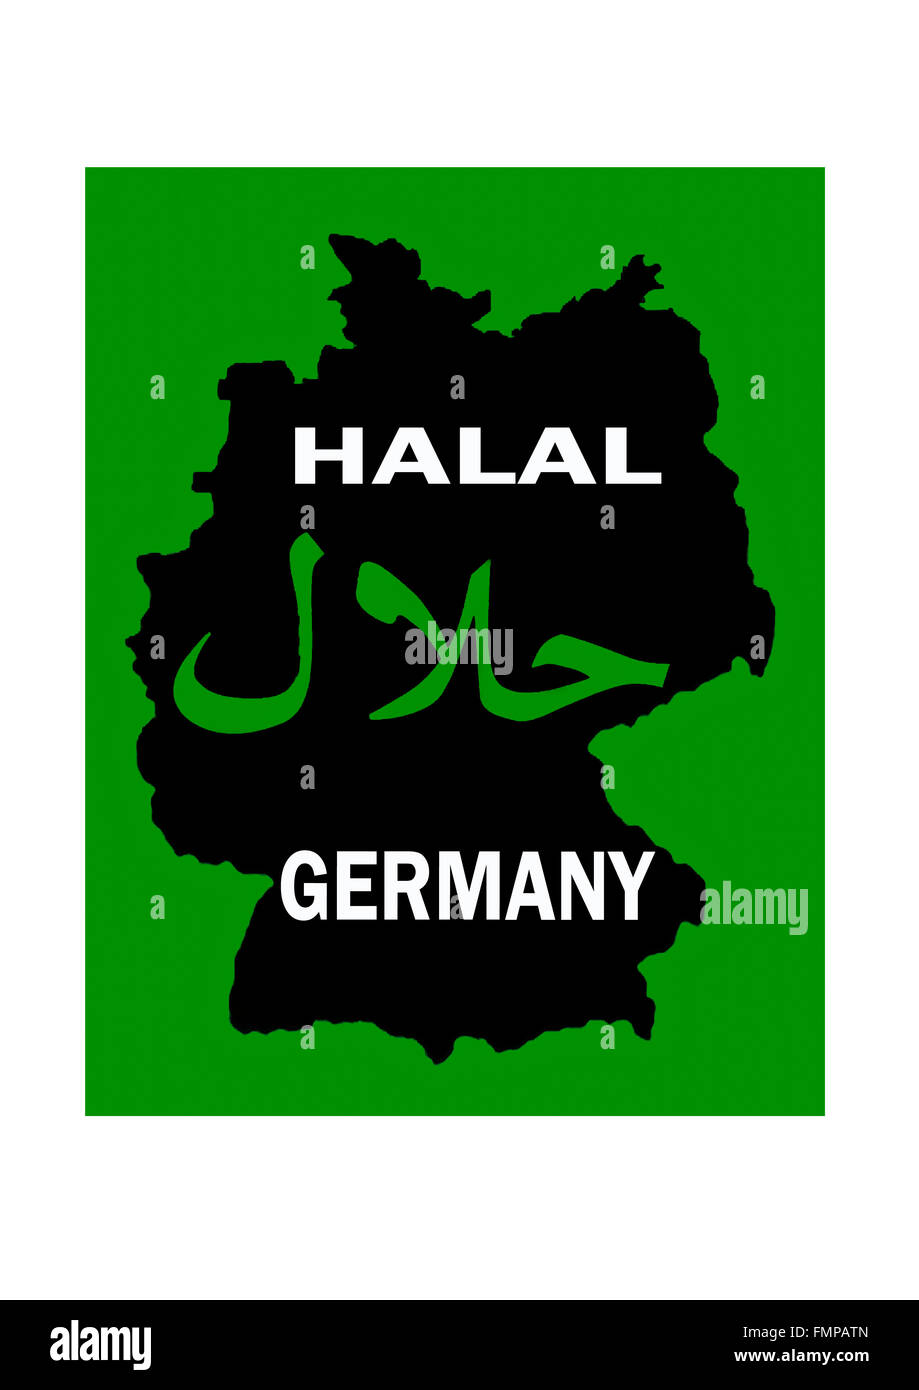 Halal certification for islamic pure meat or food in germany stock halal certification for islamic pure meat or food in germany xflitez Images